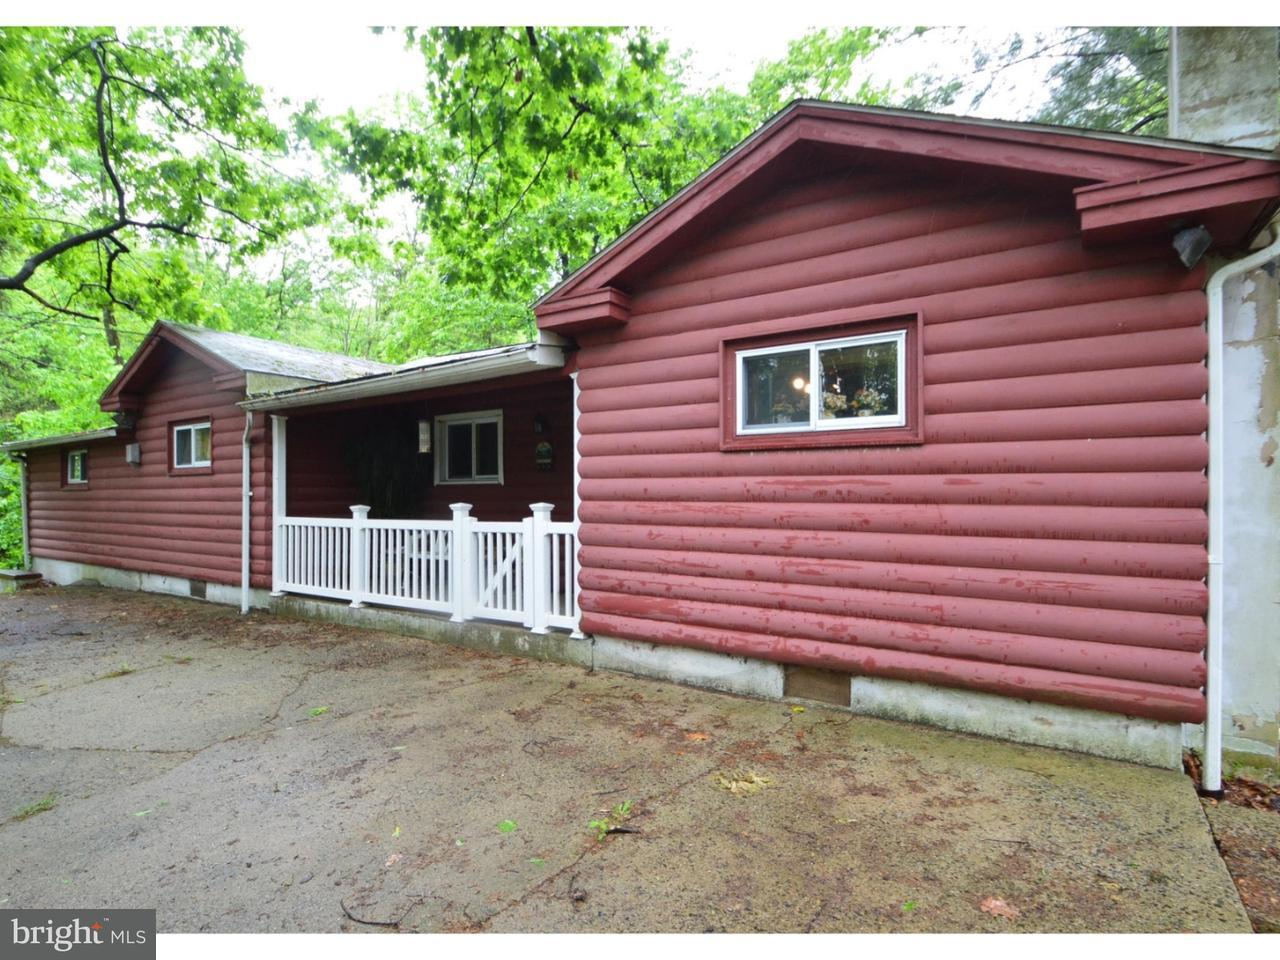 Single Family Home for Sale at 1165 N COTTONWOOD Road Danielsville, Pennsylvania 18038 United States